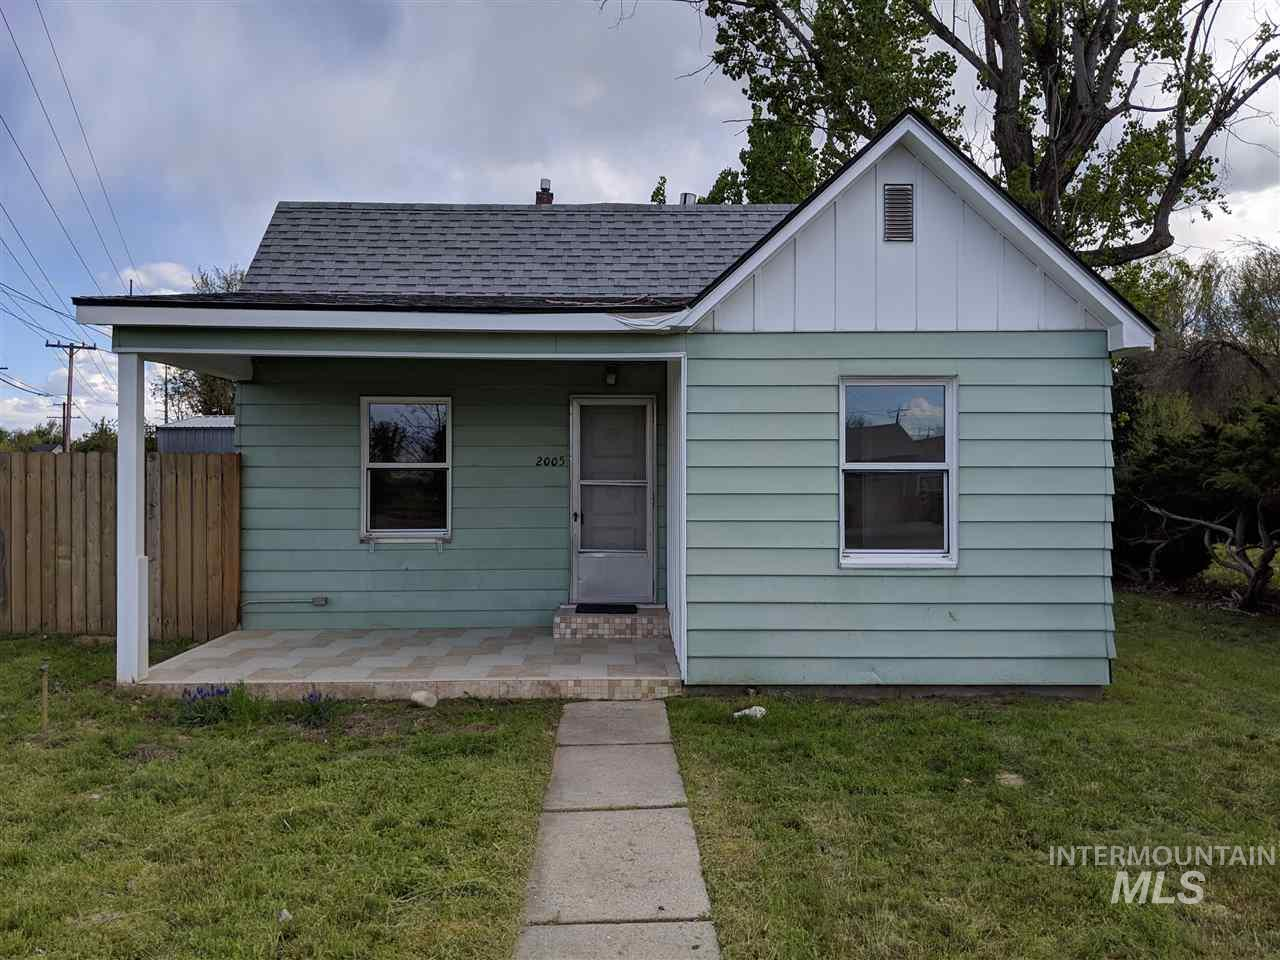 2005 Overland, Boise, Idaho 83705, 2 Bedrooms, 1 Bathroom, Rental For Rent, Price $1,000, 98721011